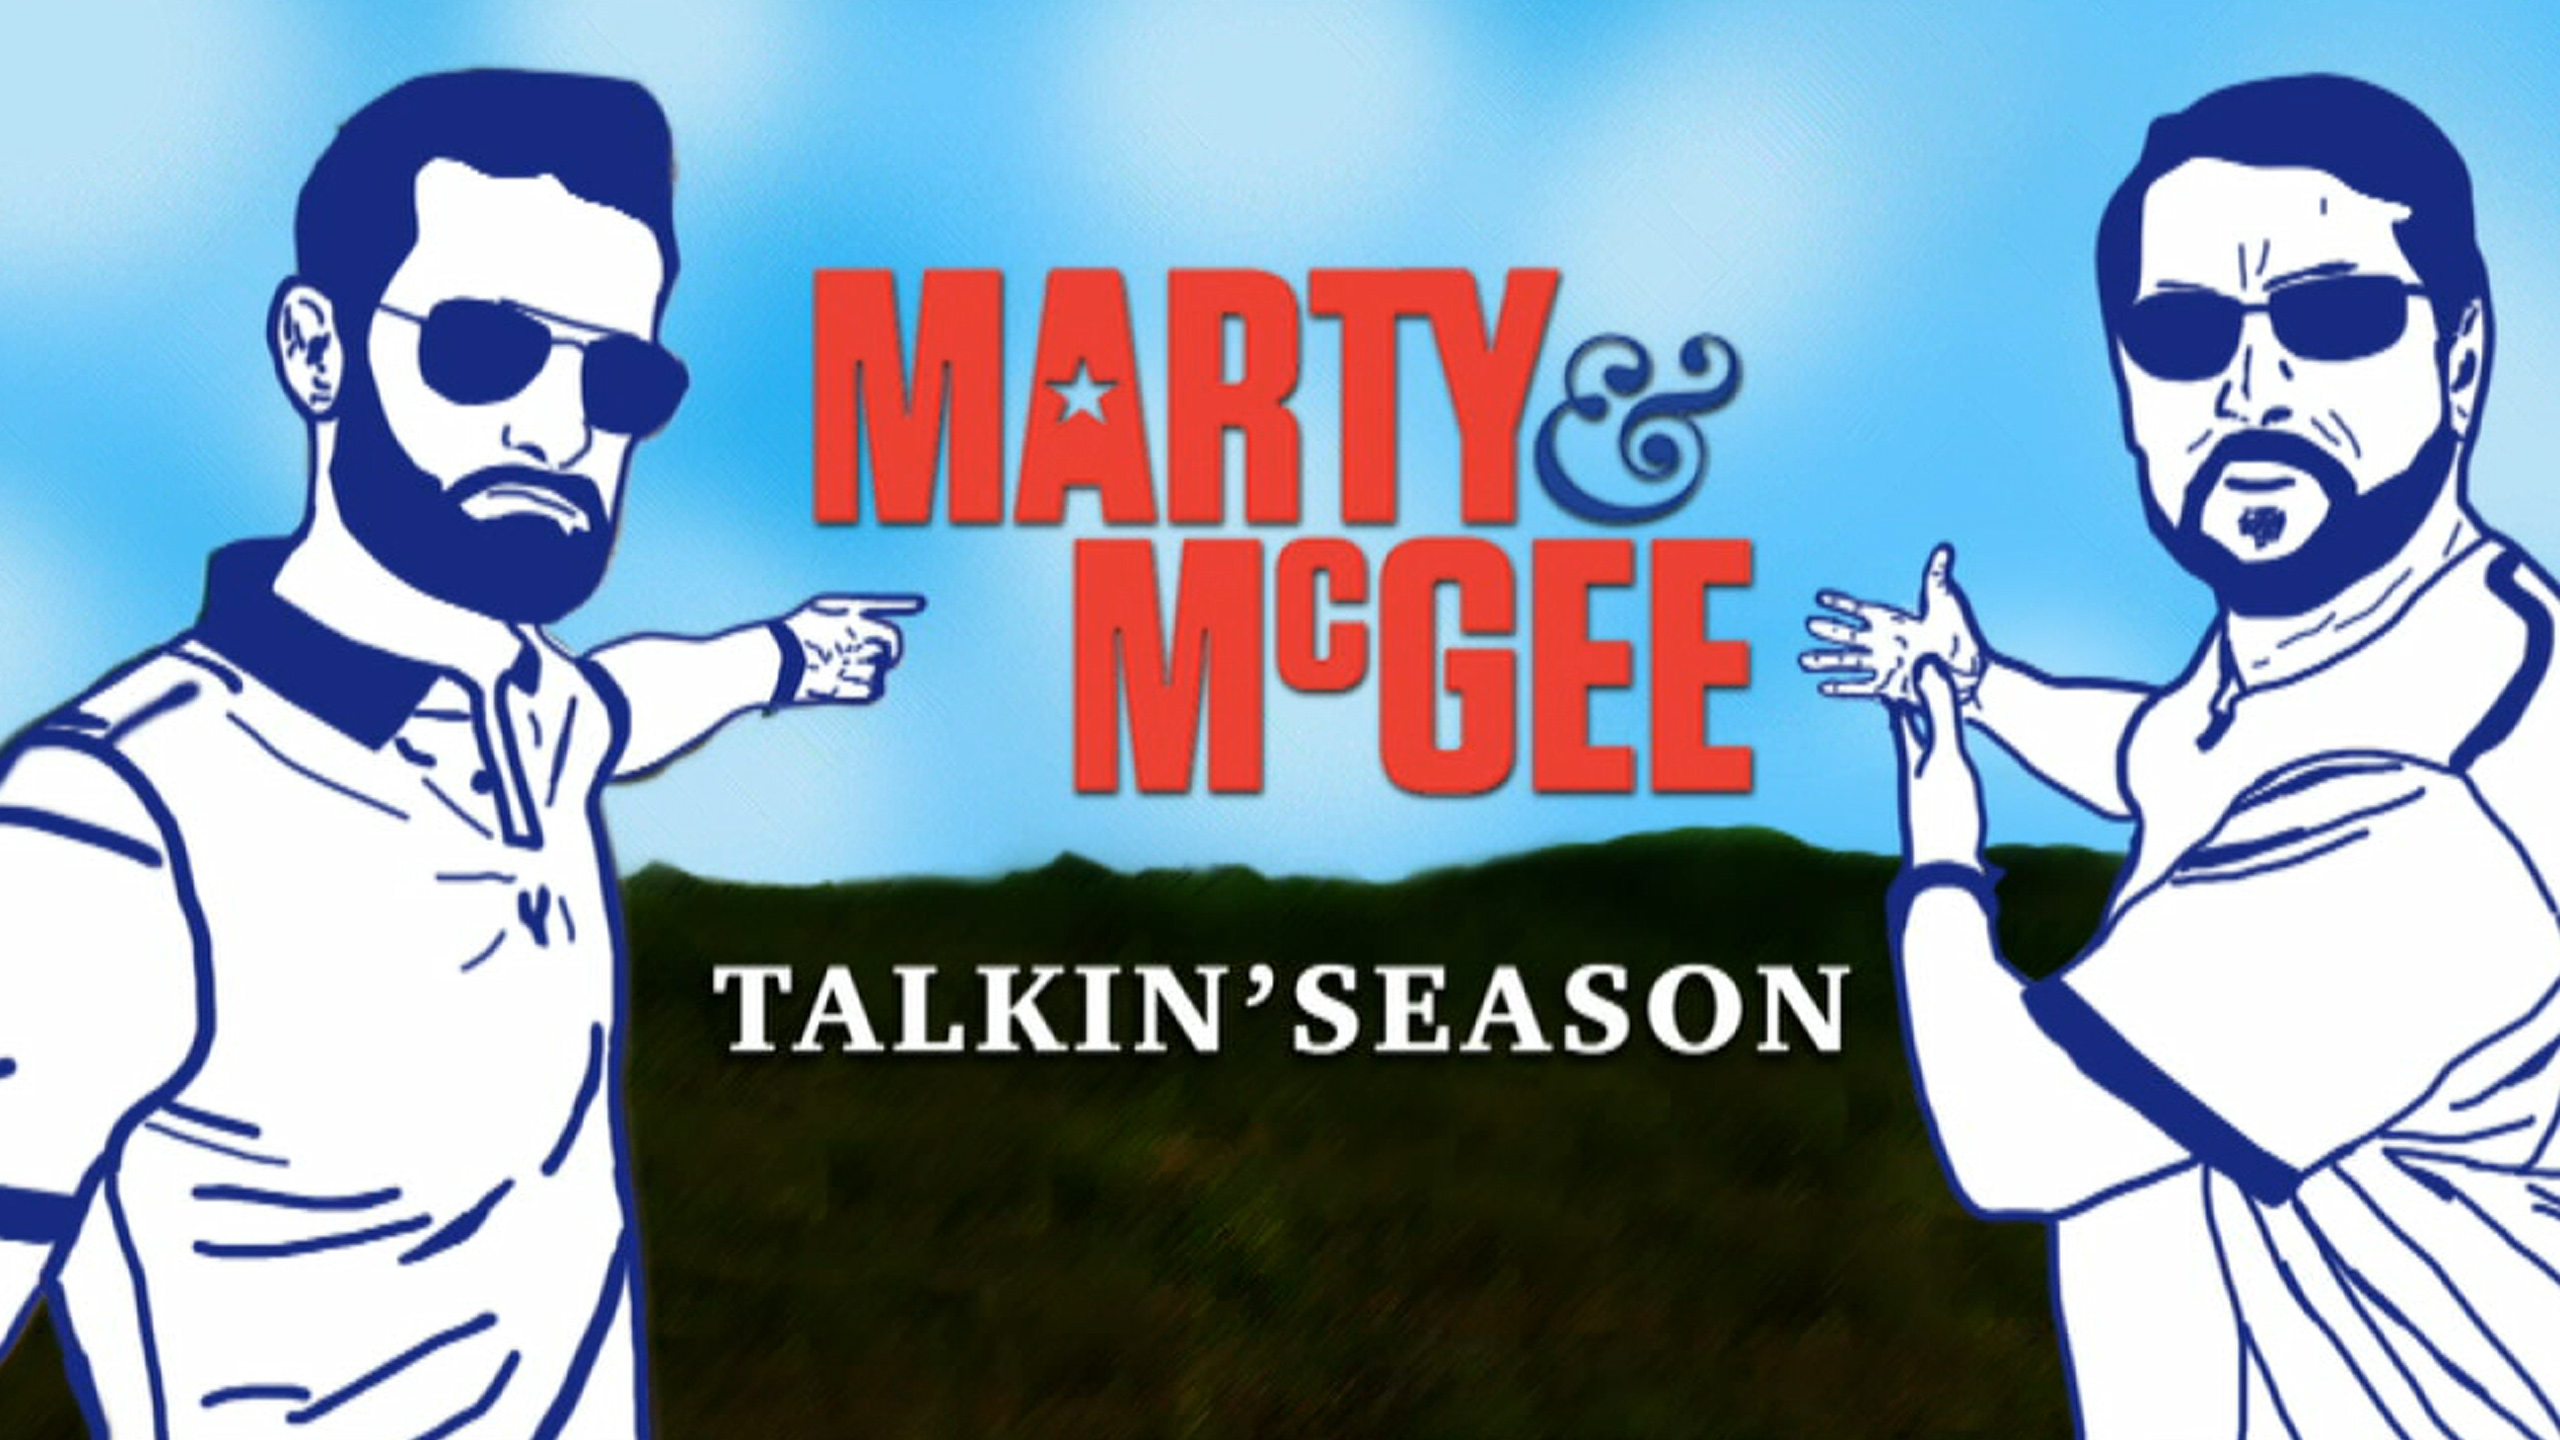 Marty & McGee: Talkin' Season – SEC West Coaches